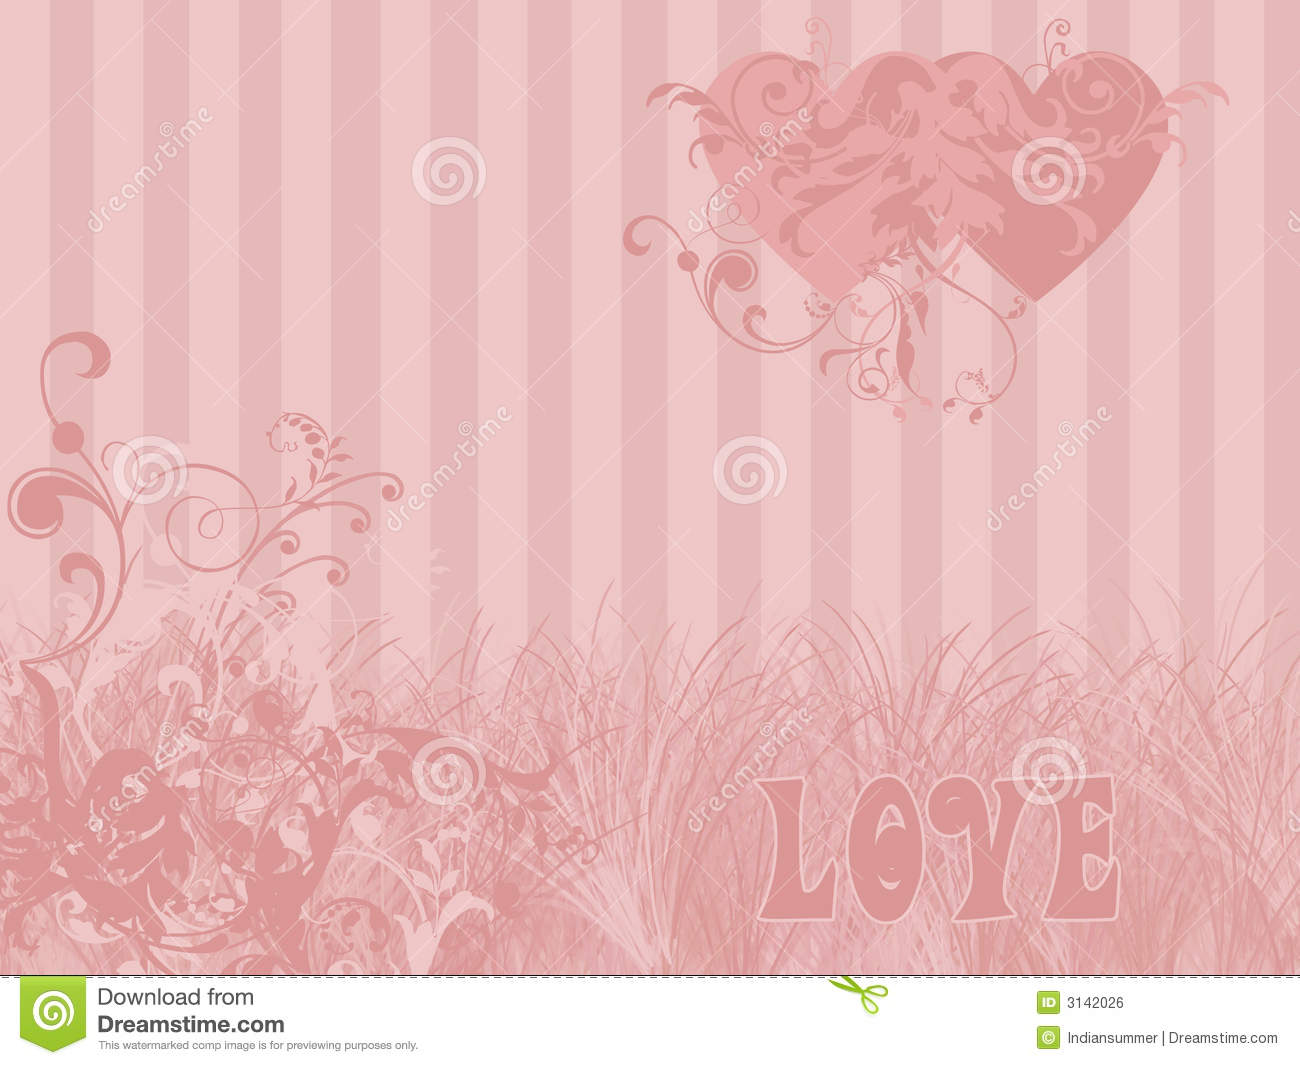 Love Wallpaper Theme : Love Theme Background Royalty Free Stock Image - Image ...